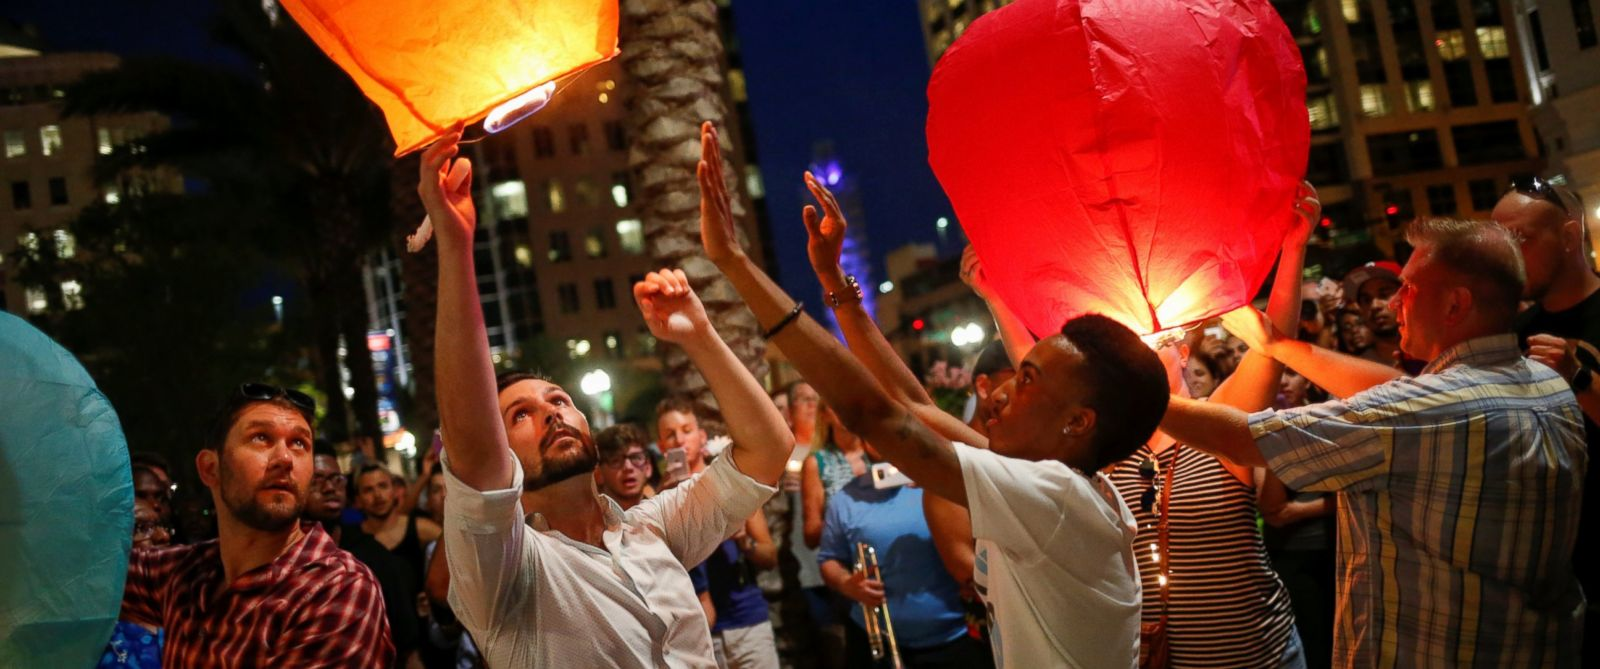 Vigil in downtown Orlando. Photo credit: Adrees Latif/Reuters from abcnews.com